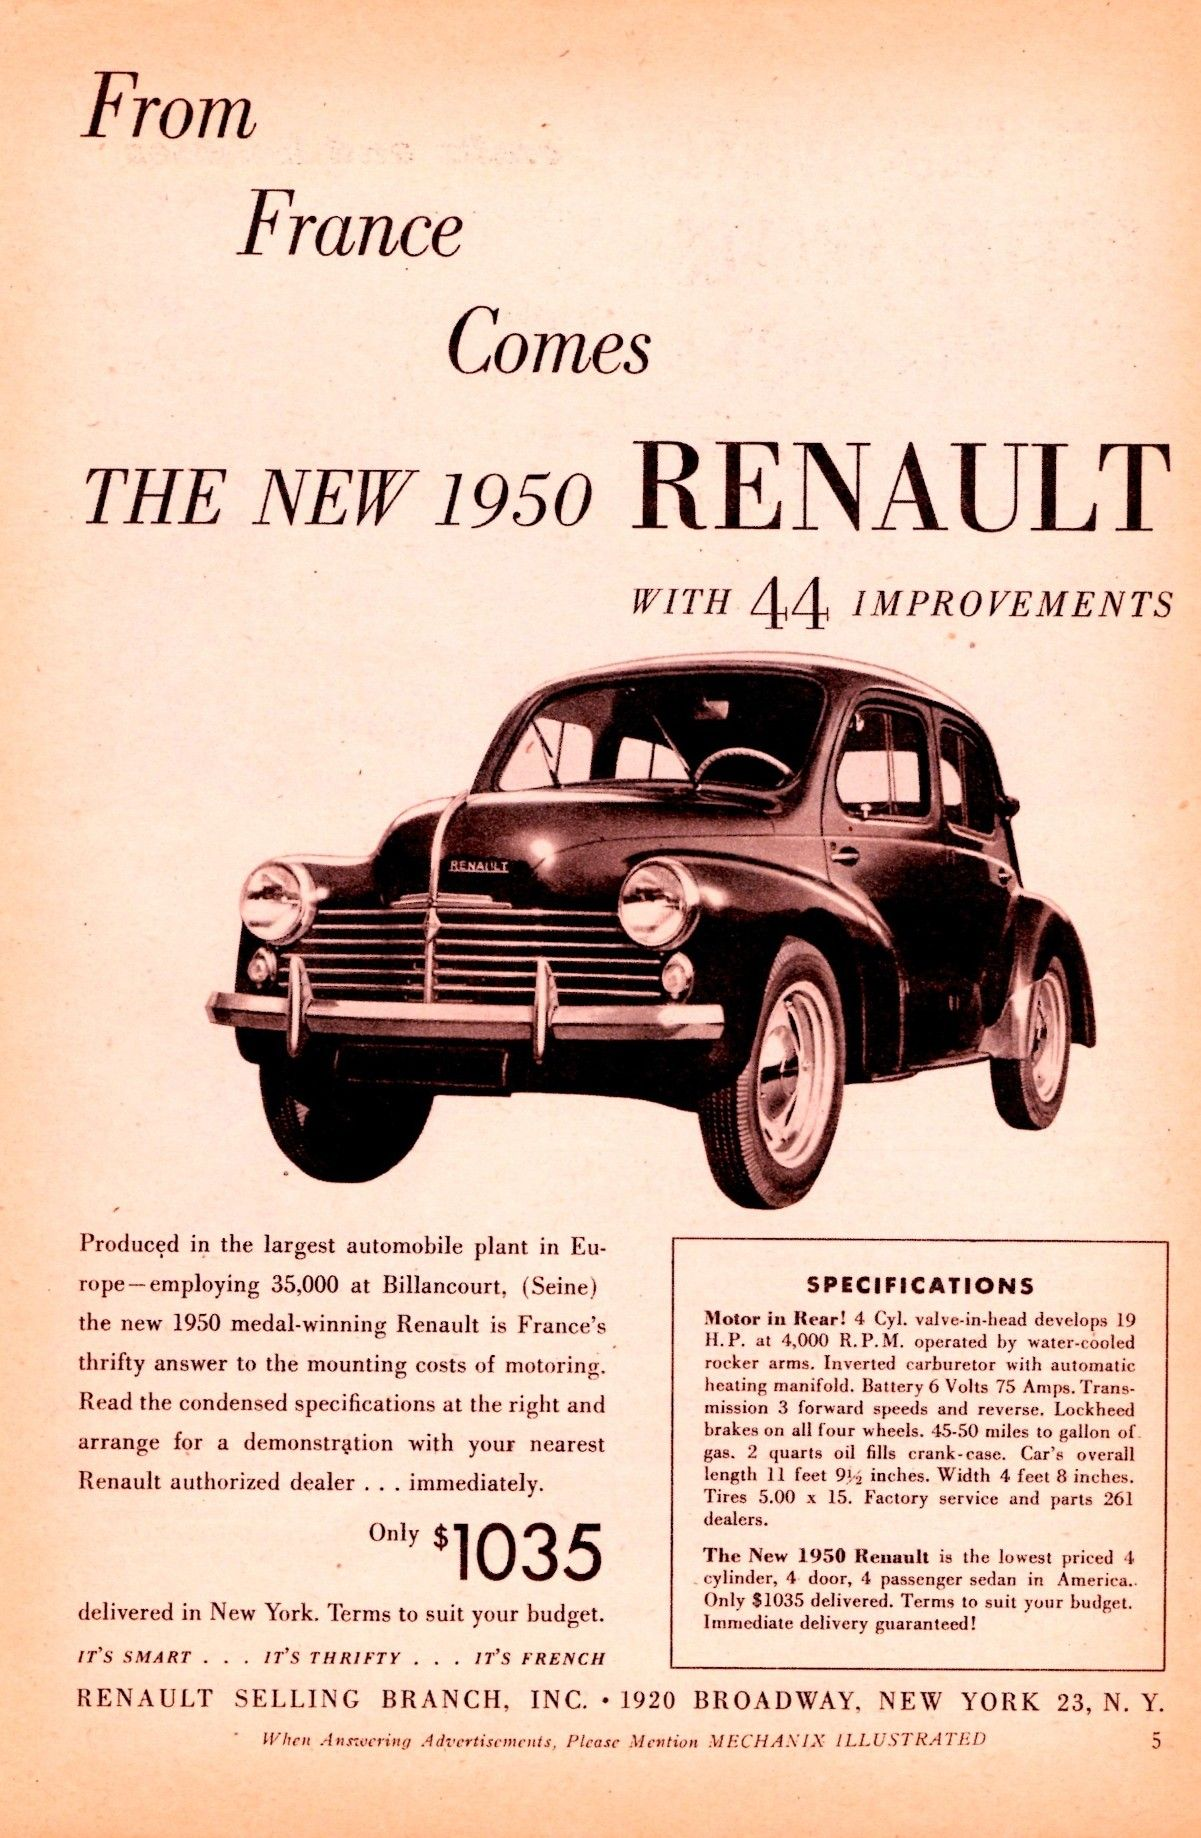 Renault 4CV great price | My 4CV Renault | Pinterest | Cars and Vehicle